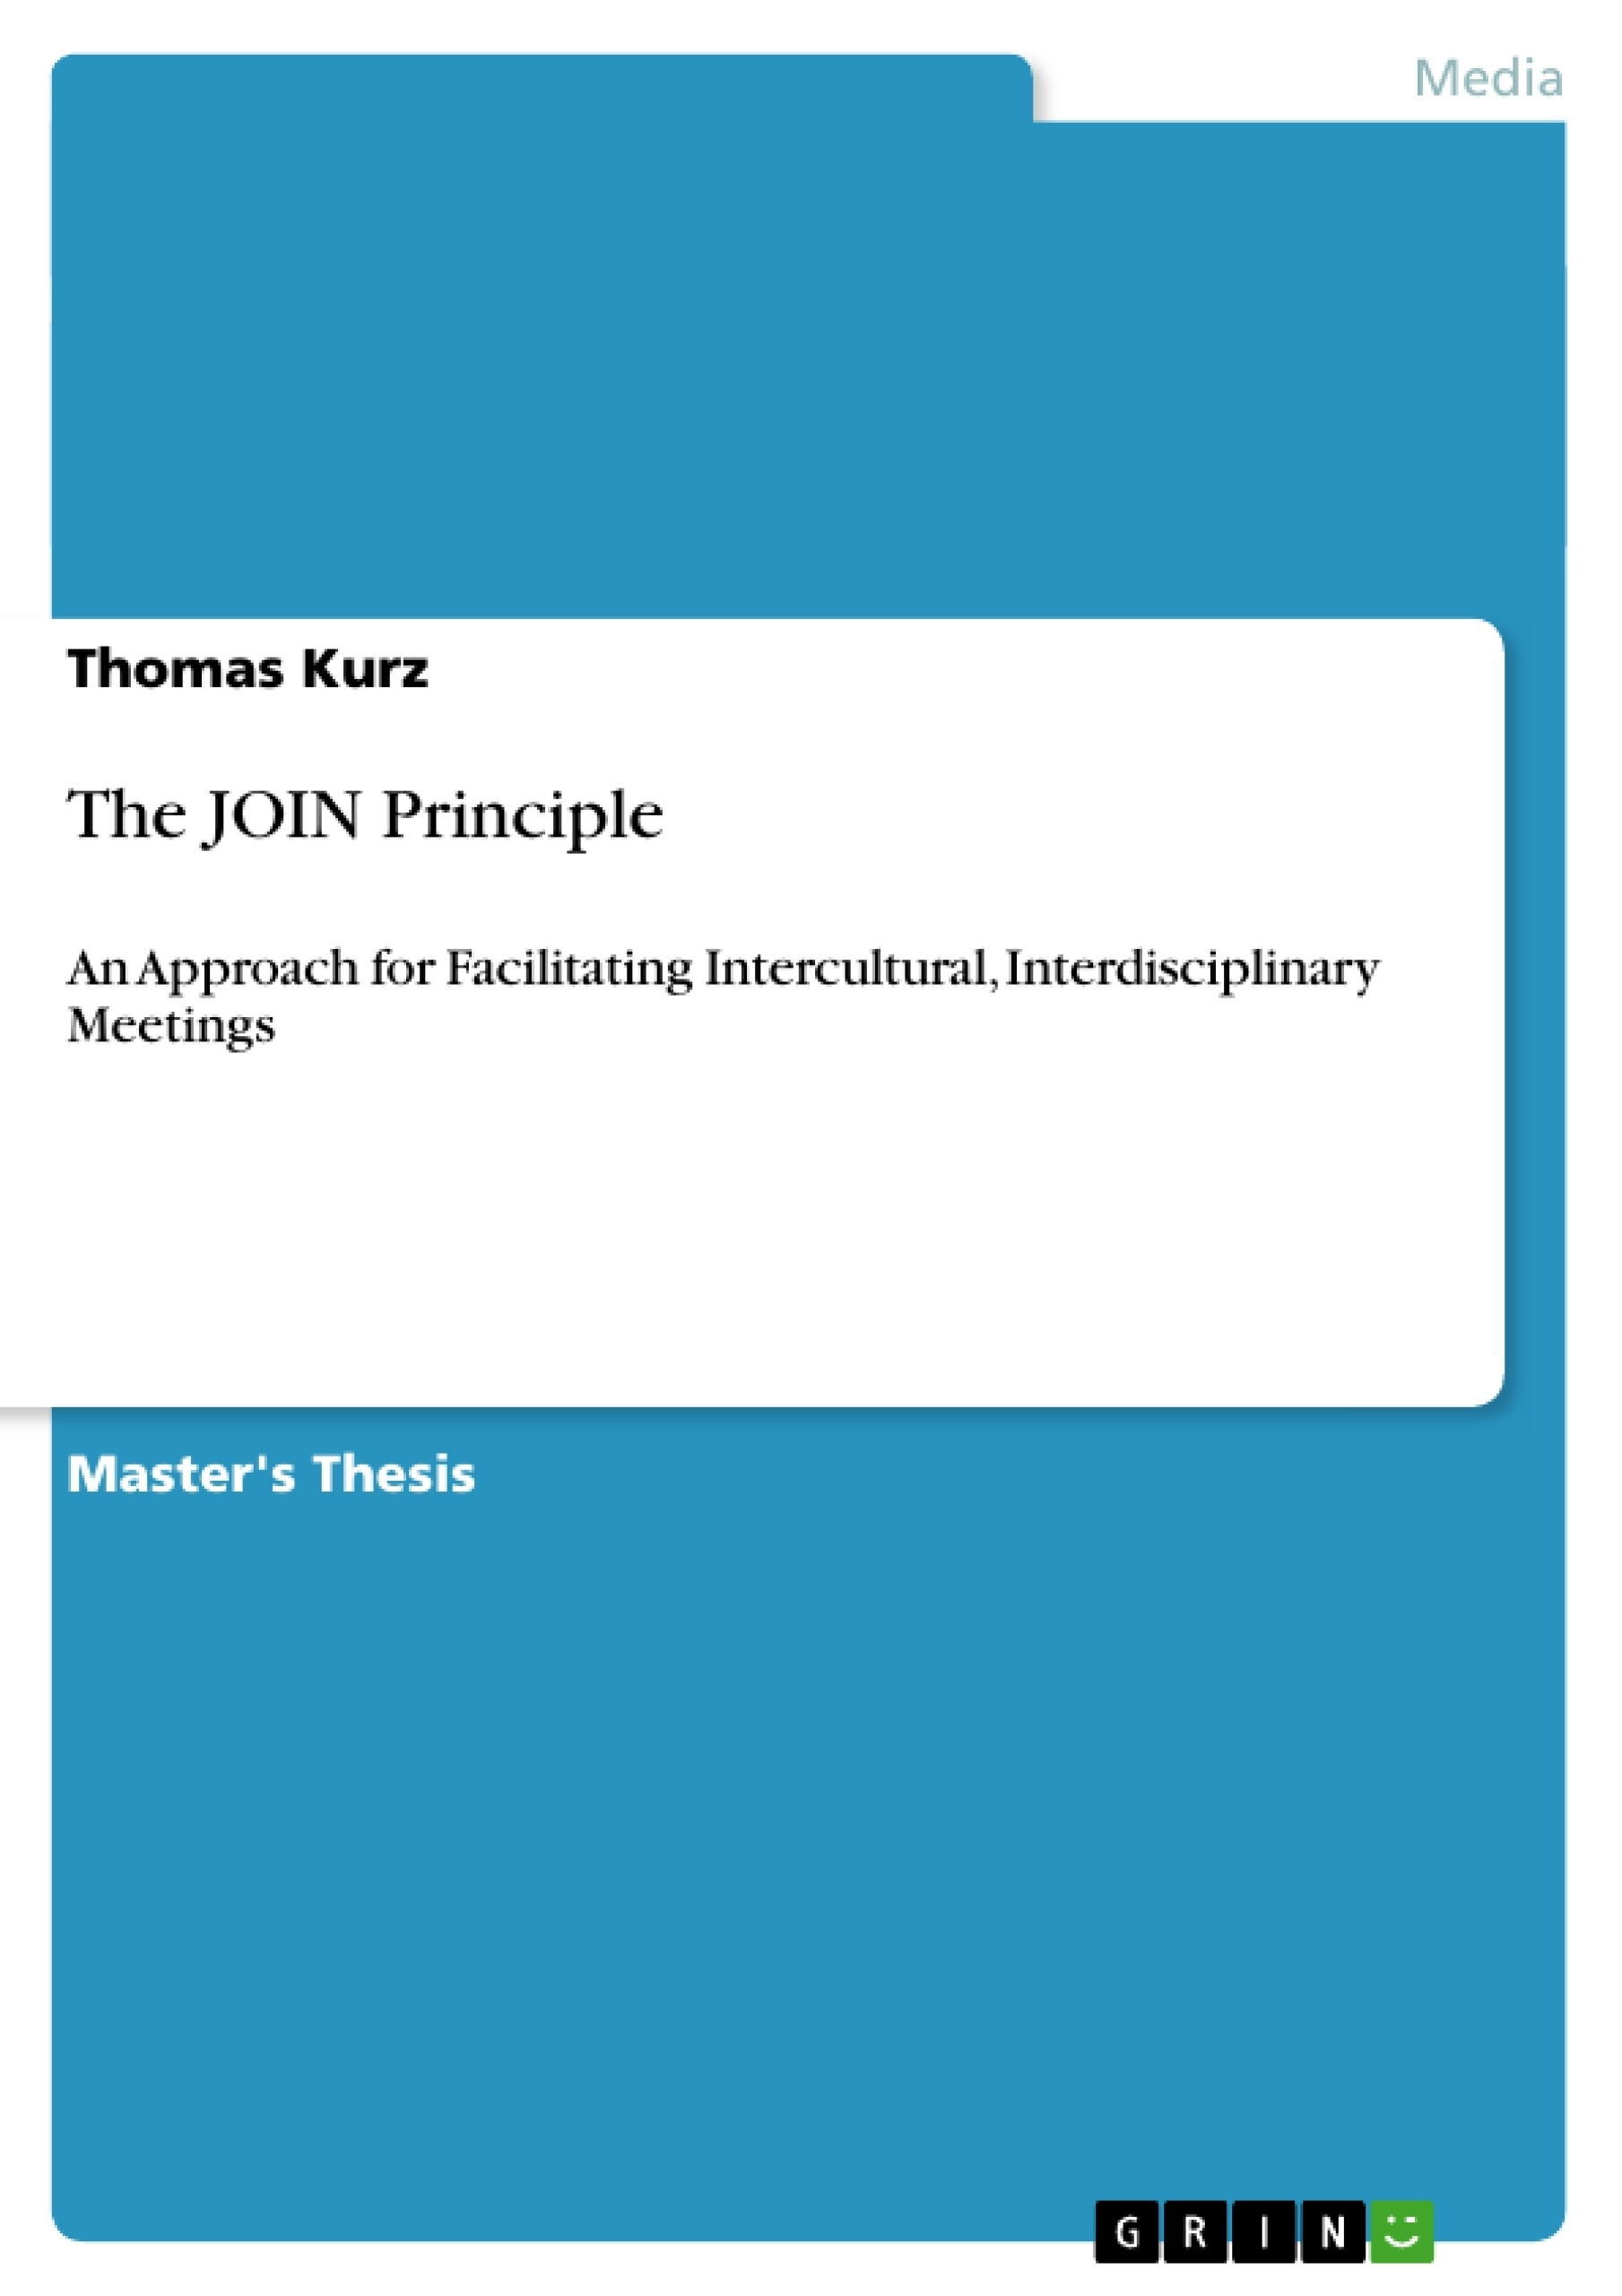 Title: The JOIN Principle